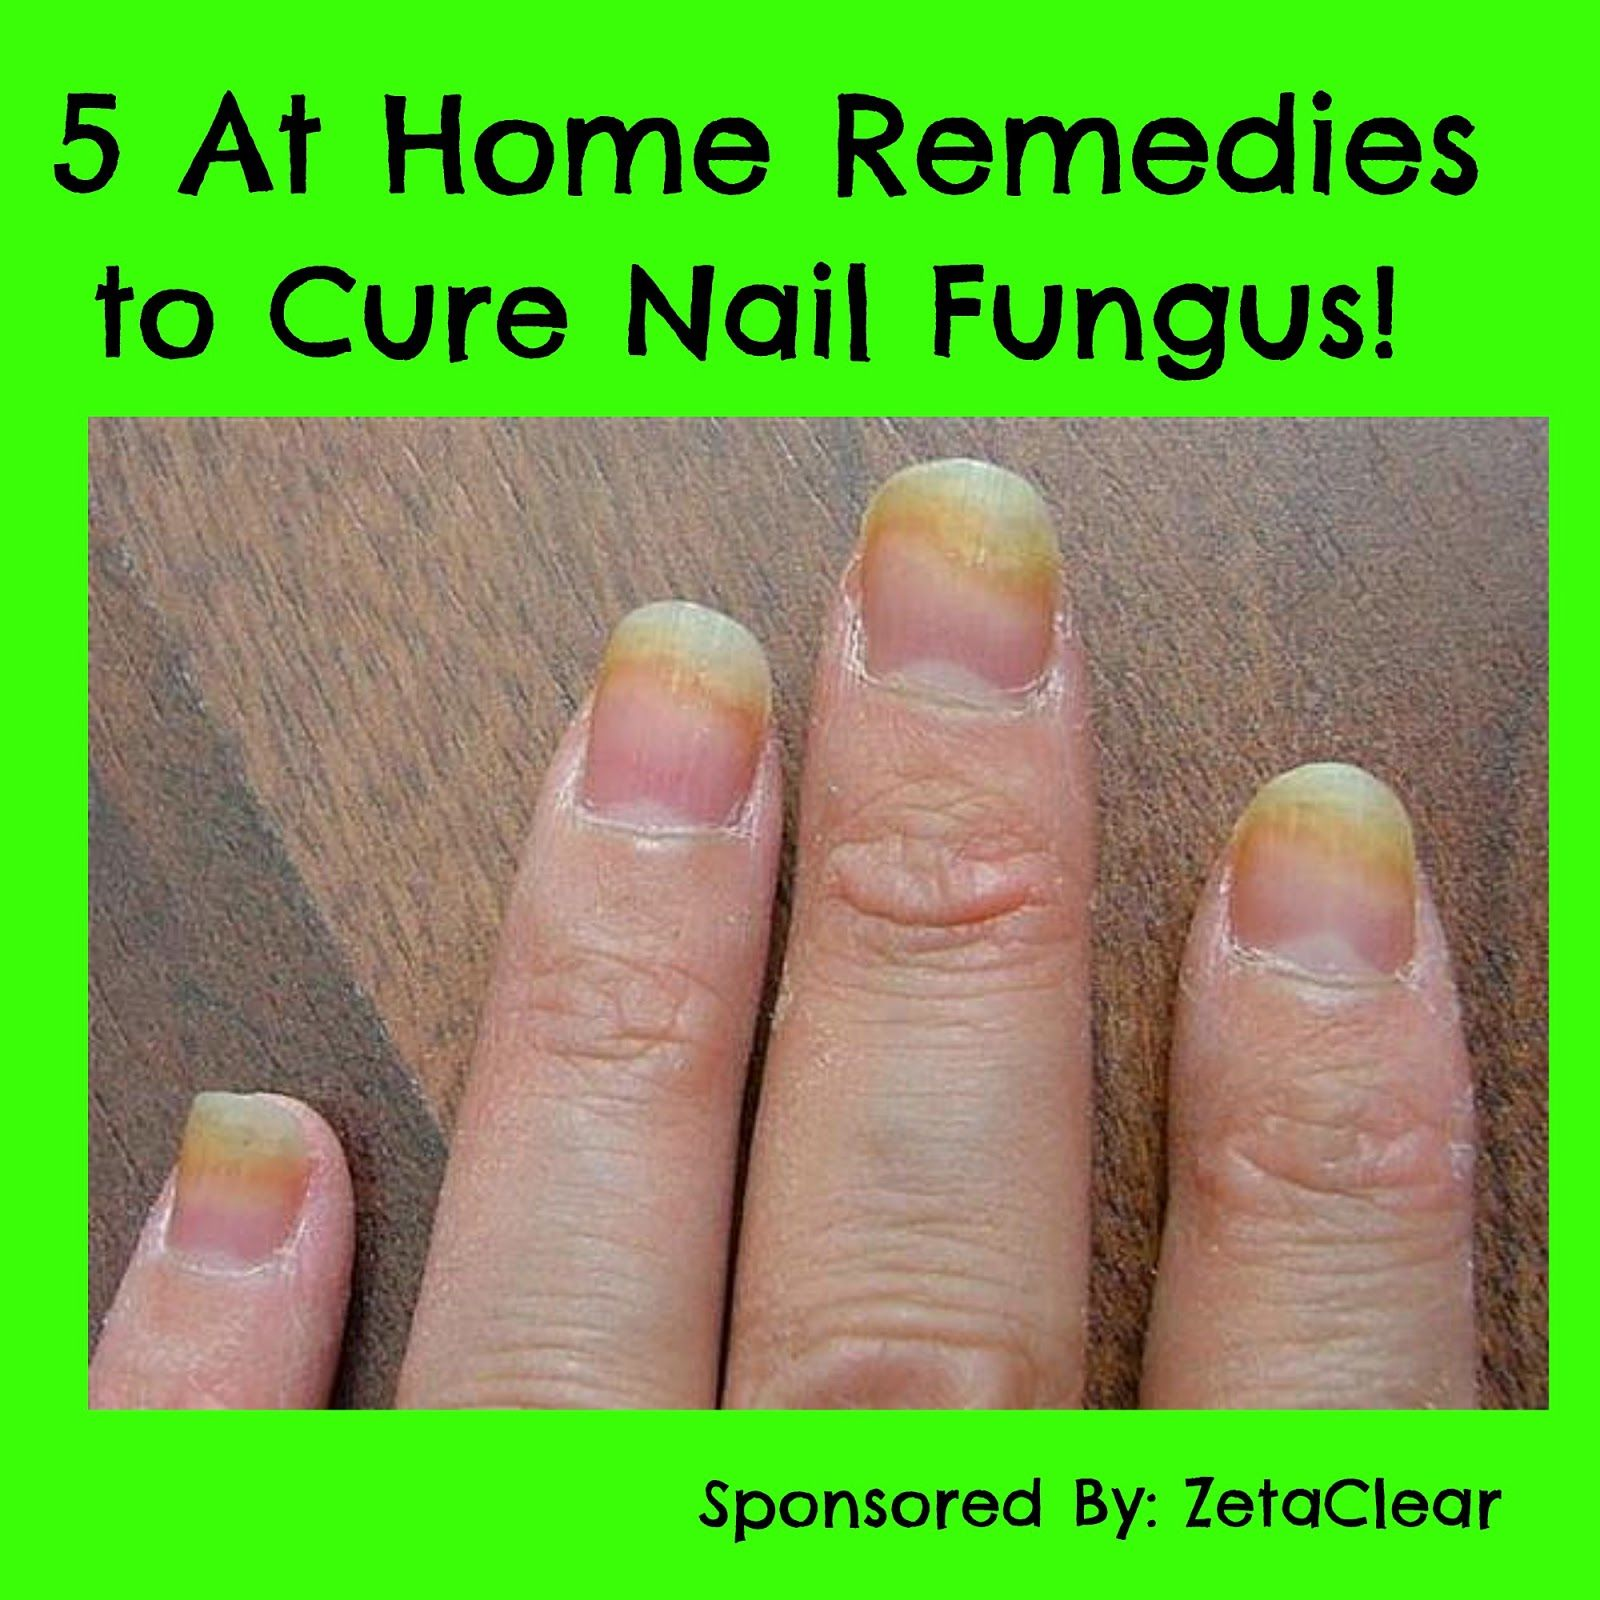 5 At Home Reme s to Cure Nail Fungus